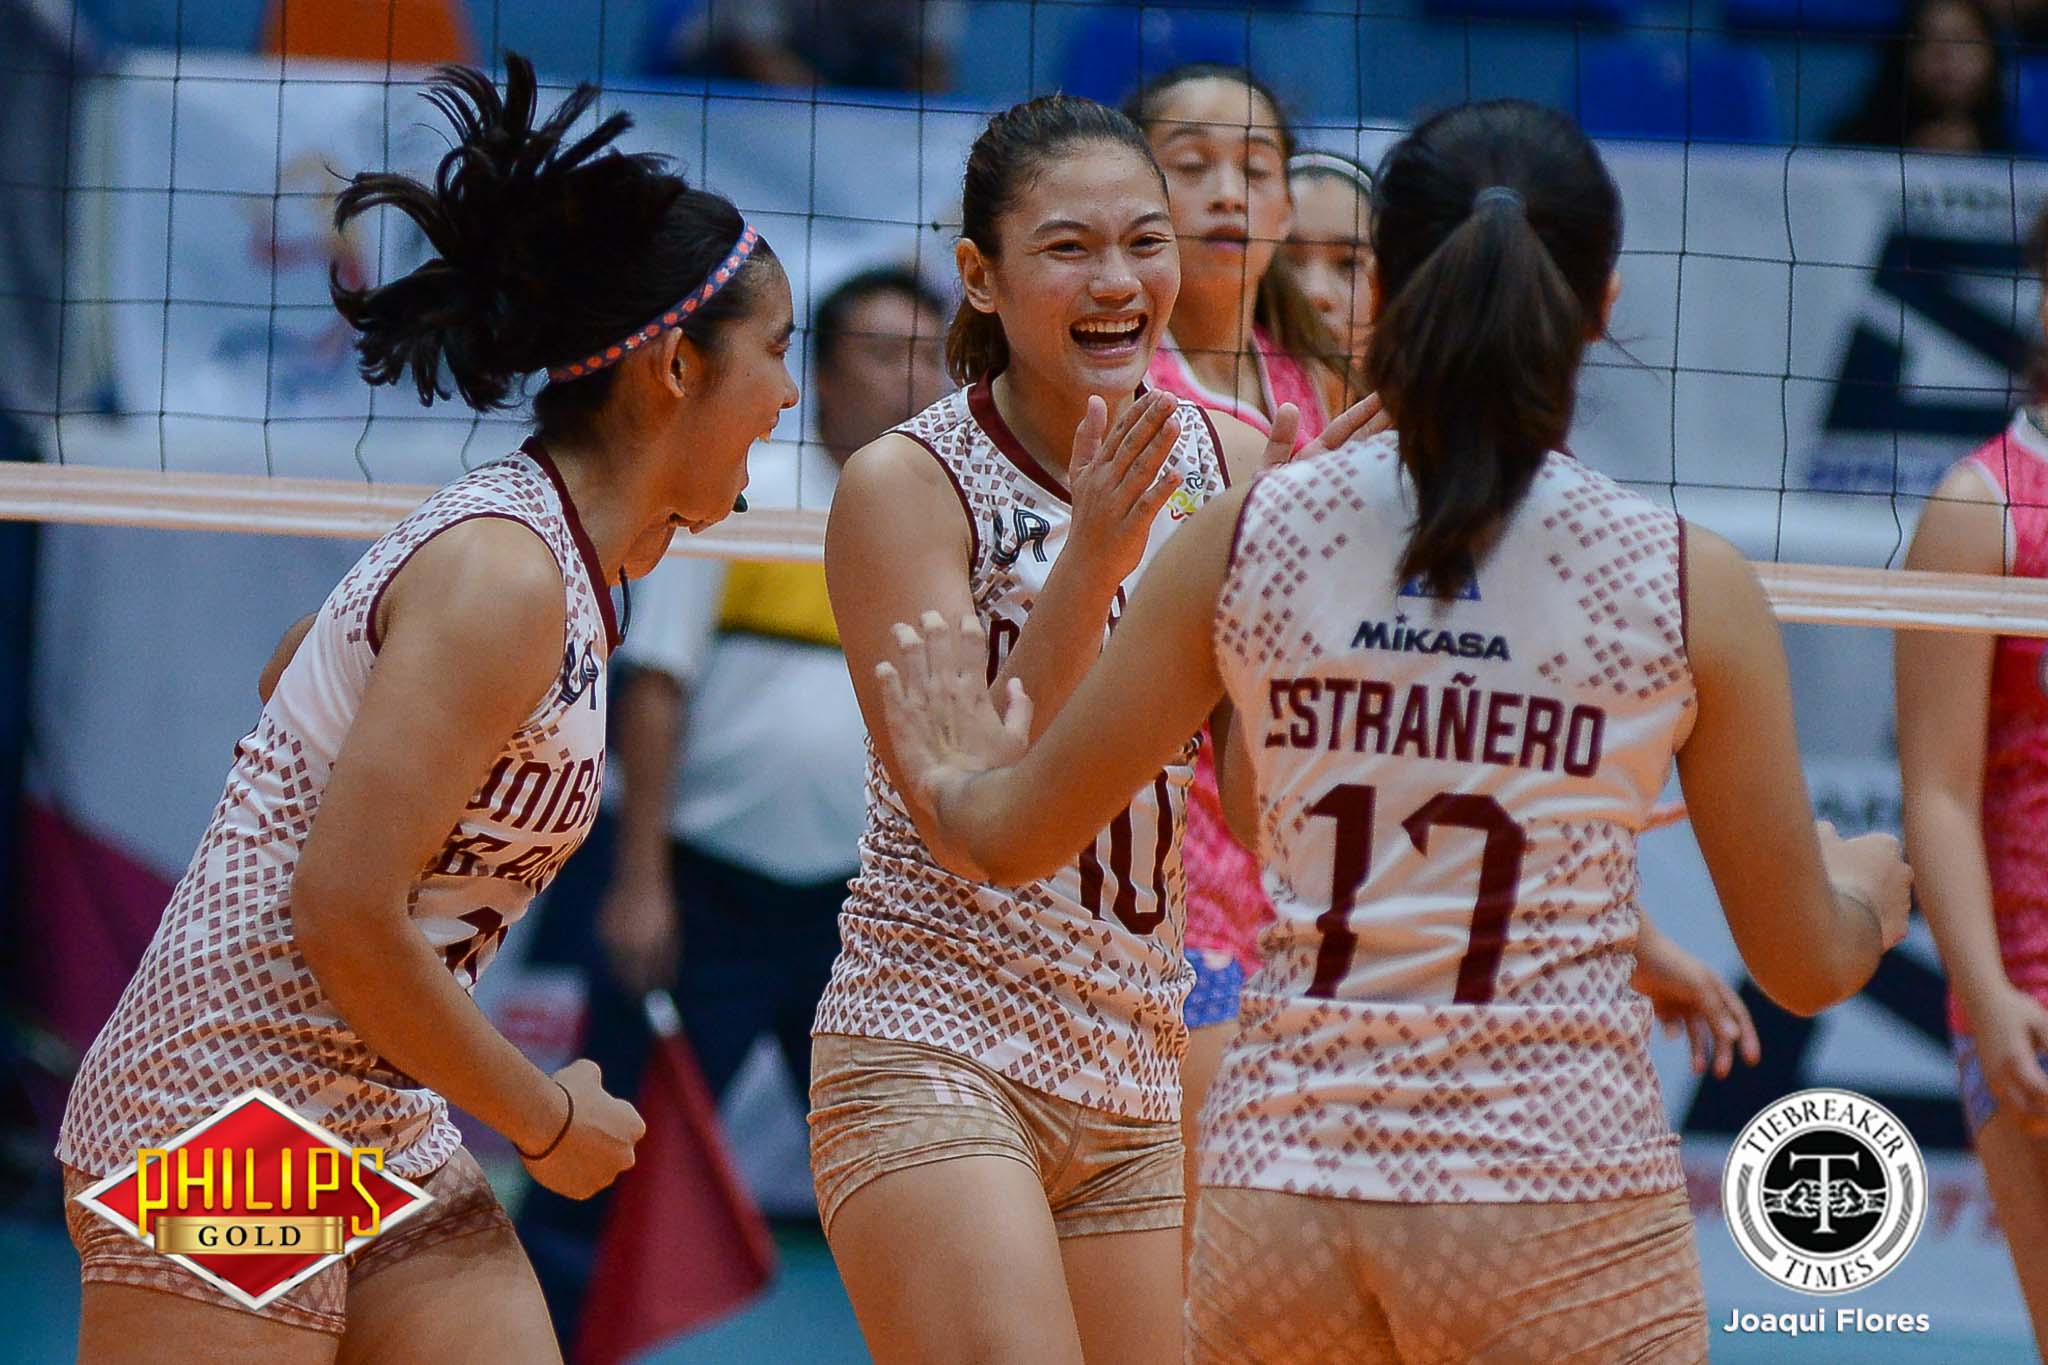 Philippine Sports News - Tiebreaker Times Challenging Open Conference raises UP's sense of urgency News PVL UP Volleyball  UP Women's Volleyball Tots Carlos Jerry Yee Isa Molde 2017 PVL Women's Open Conference 2017 PVL Season